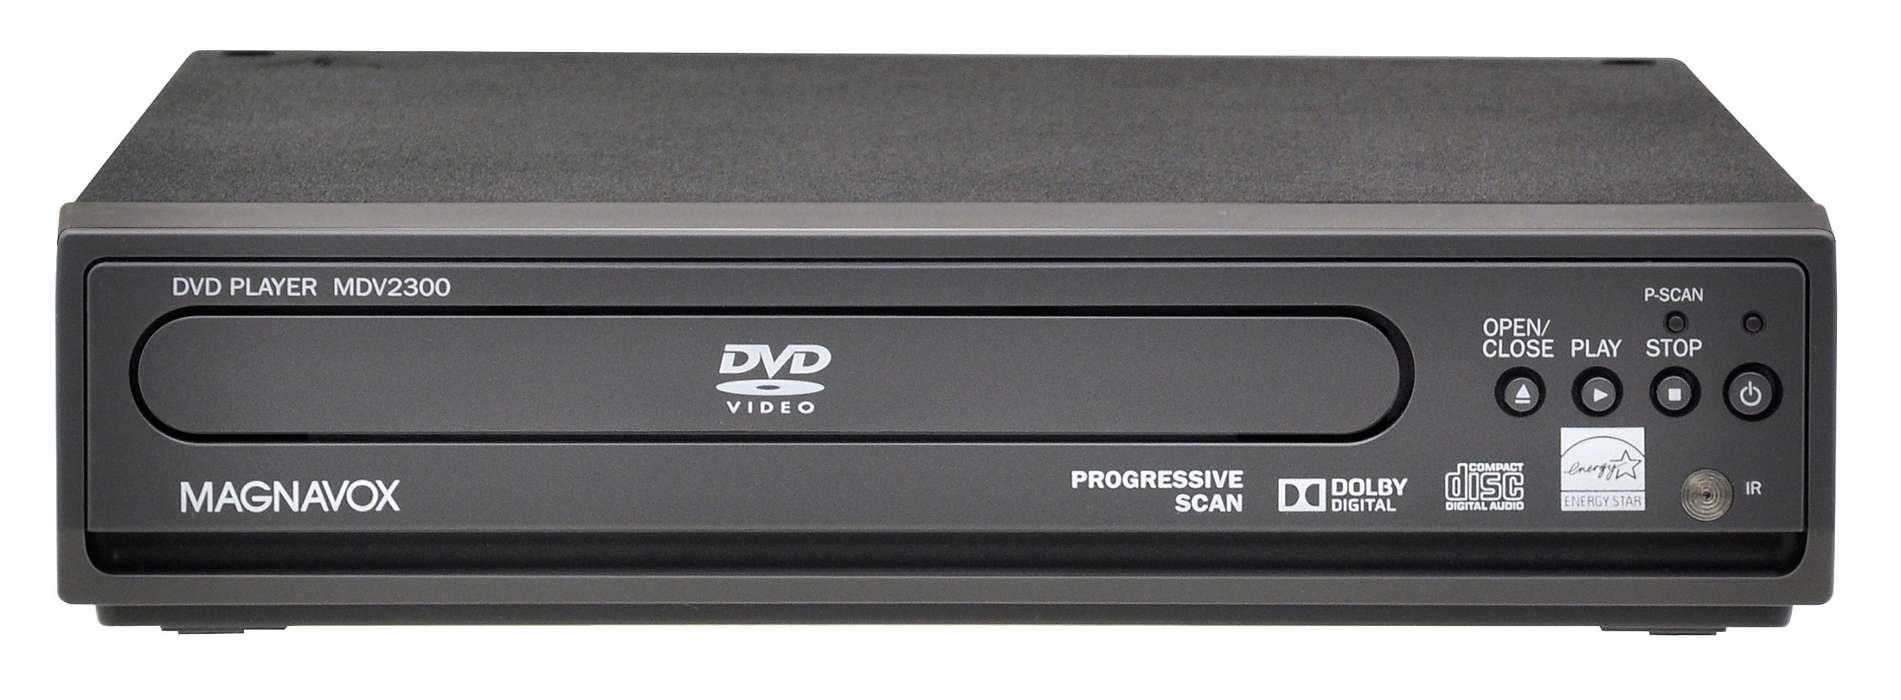 DVD Player with Progressive Scan